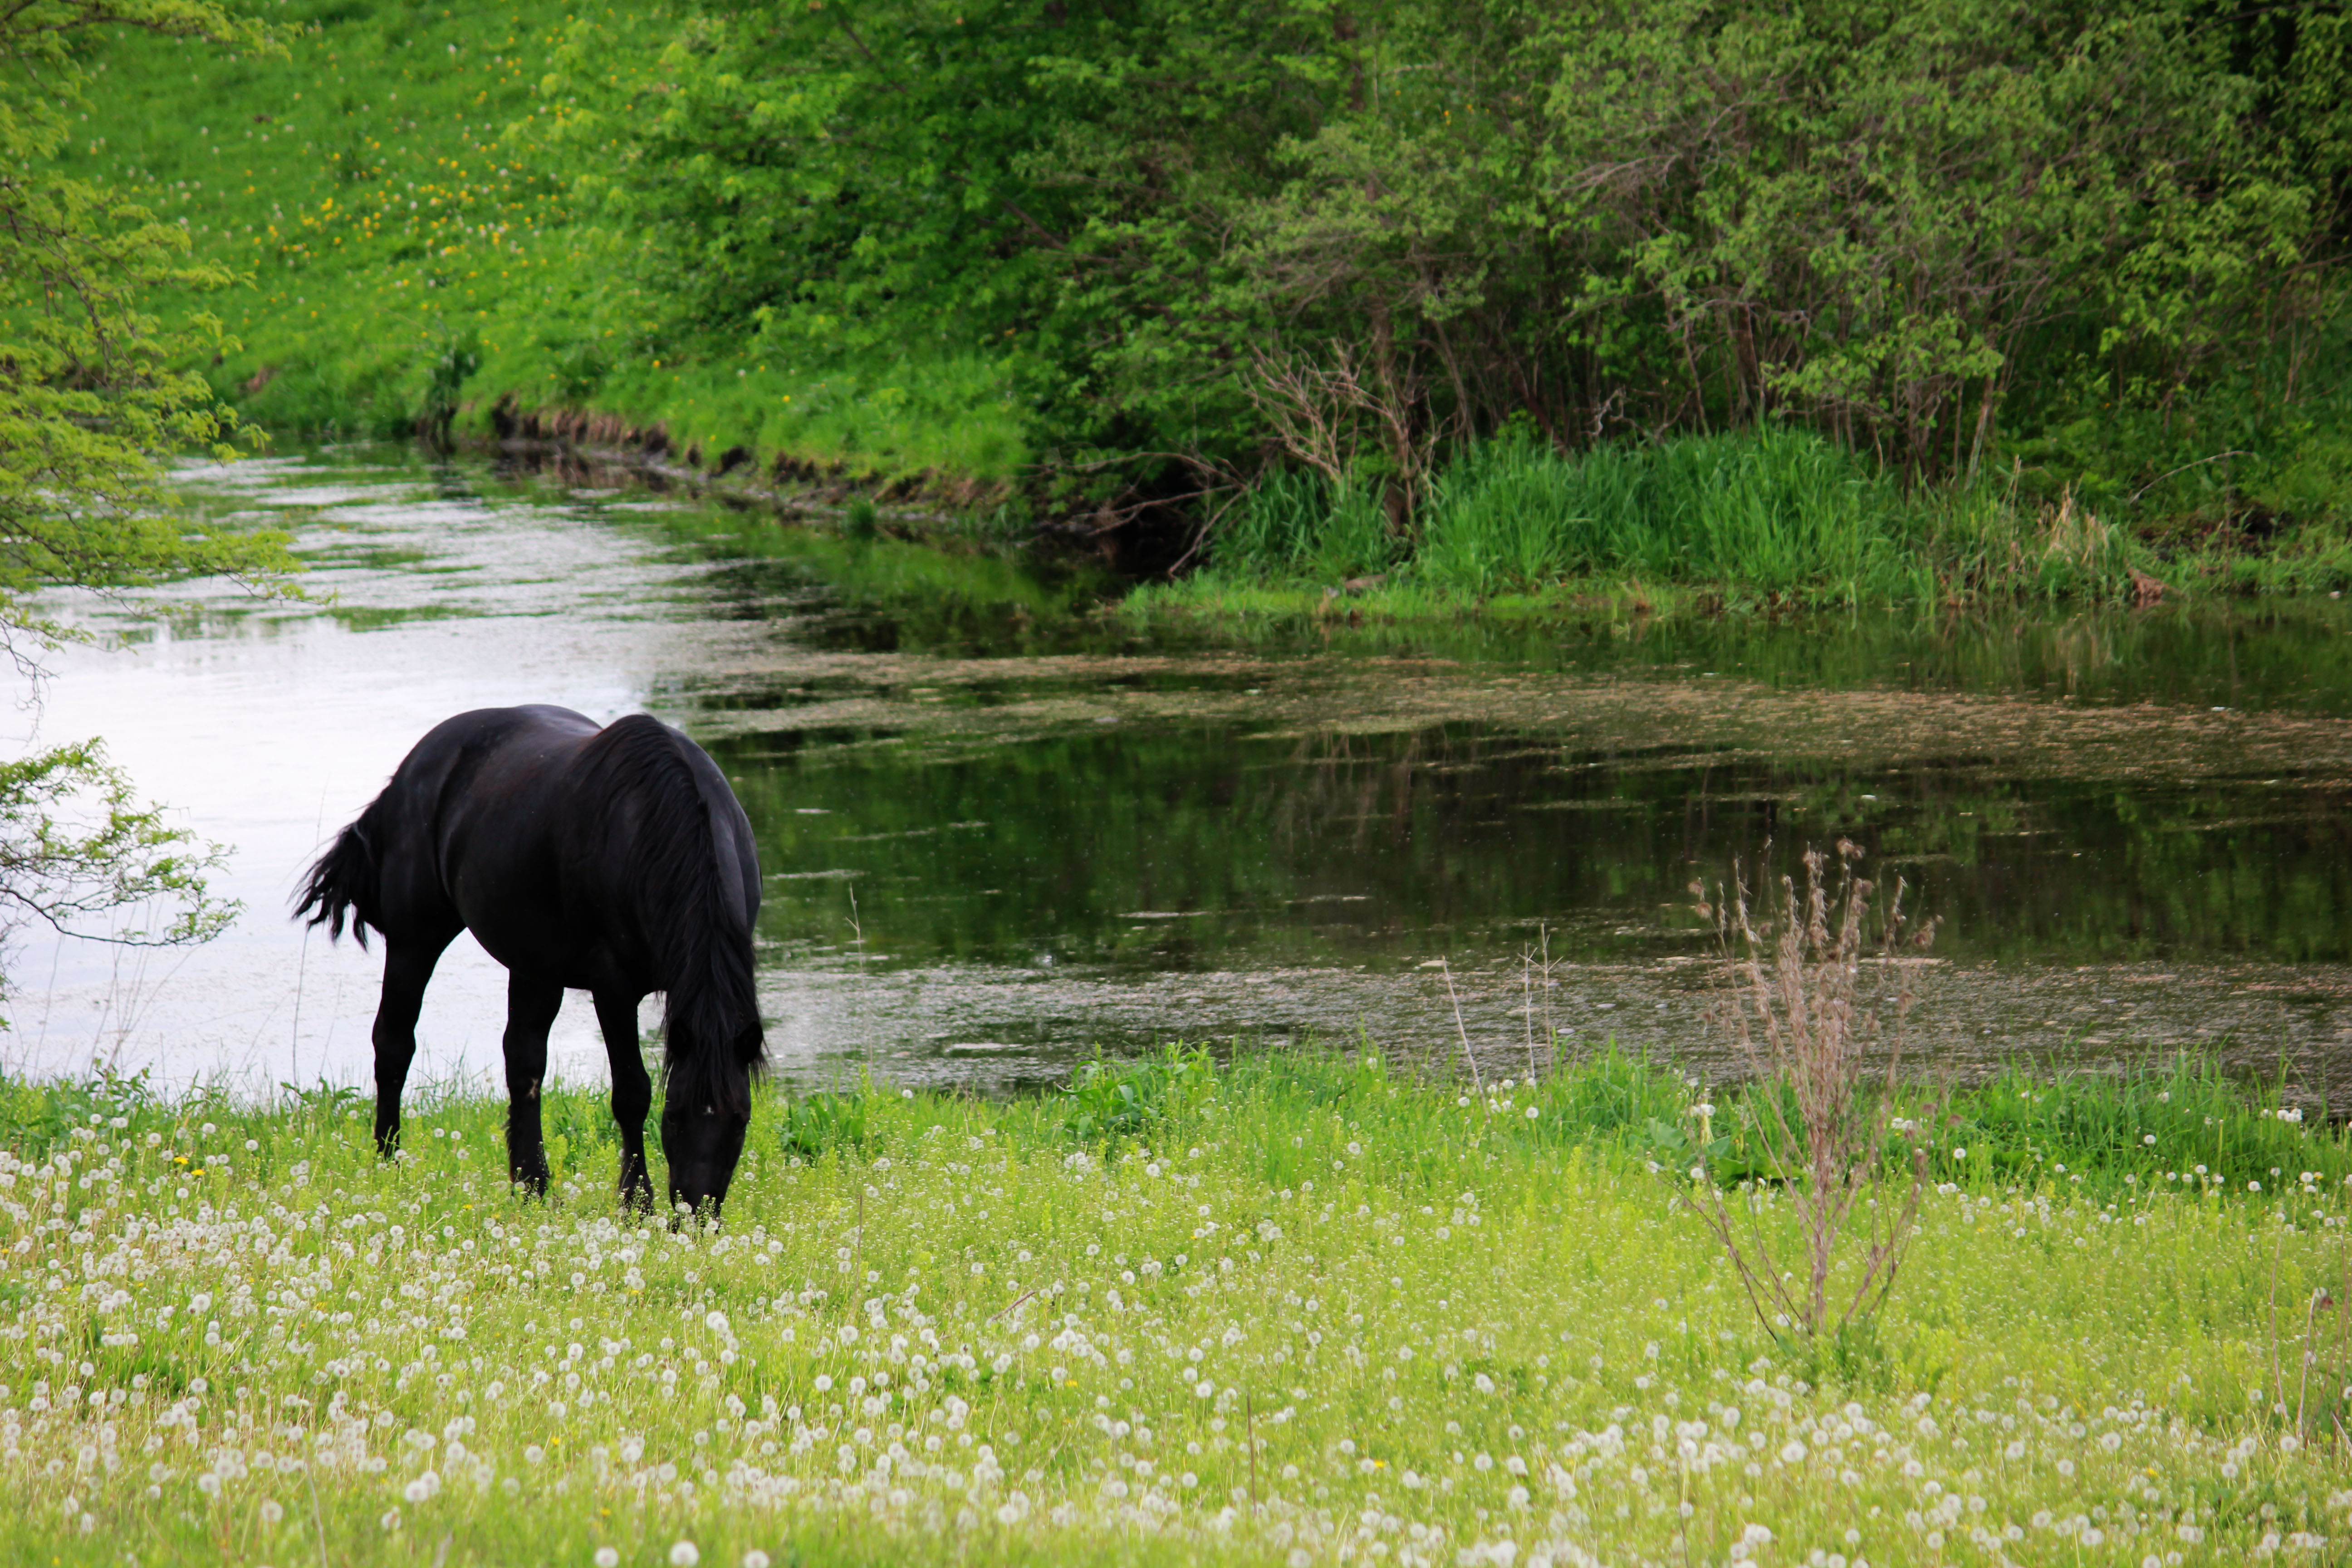 Black Horse Grazing